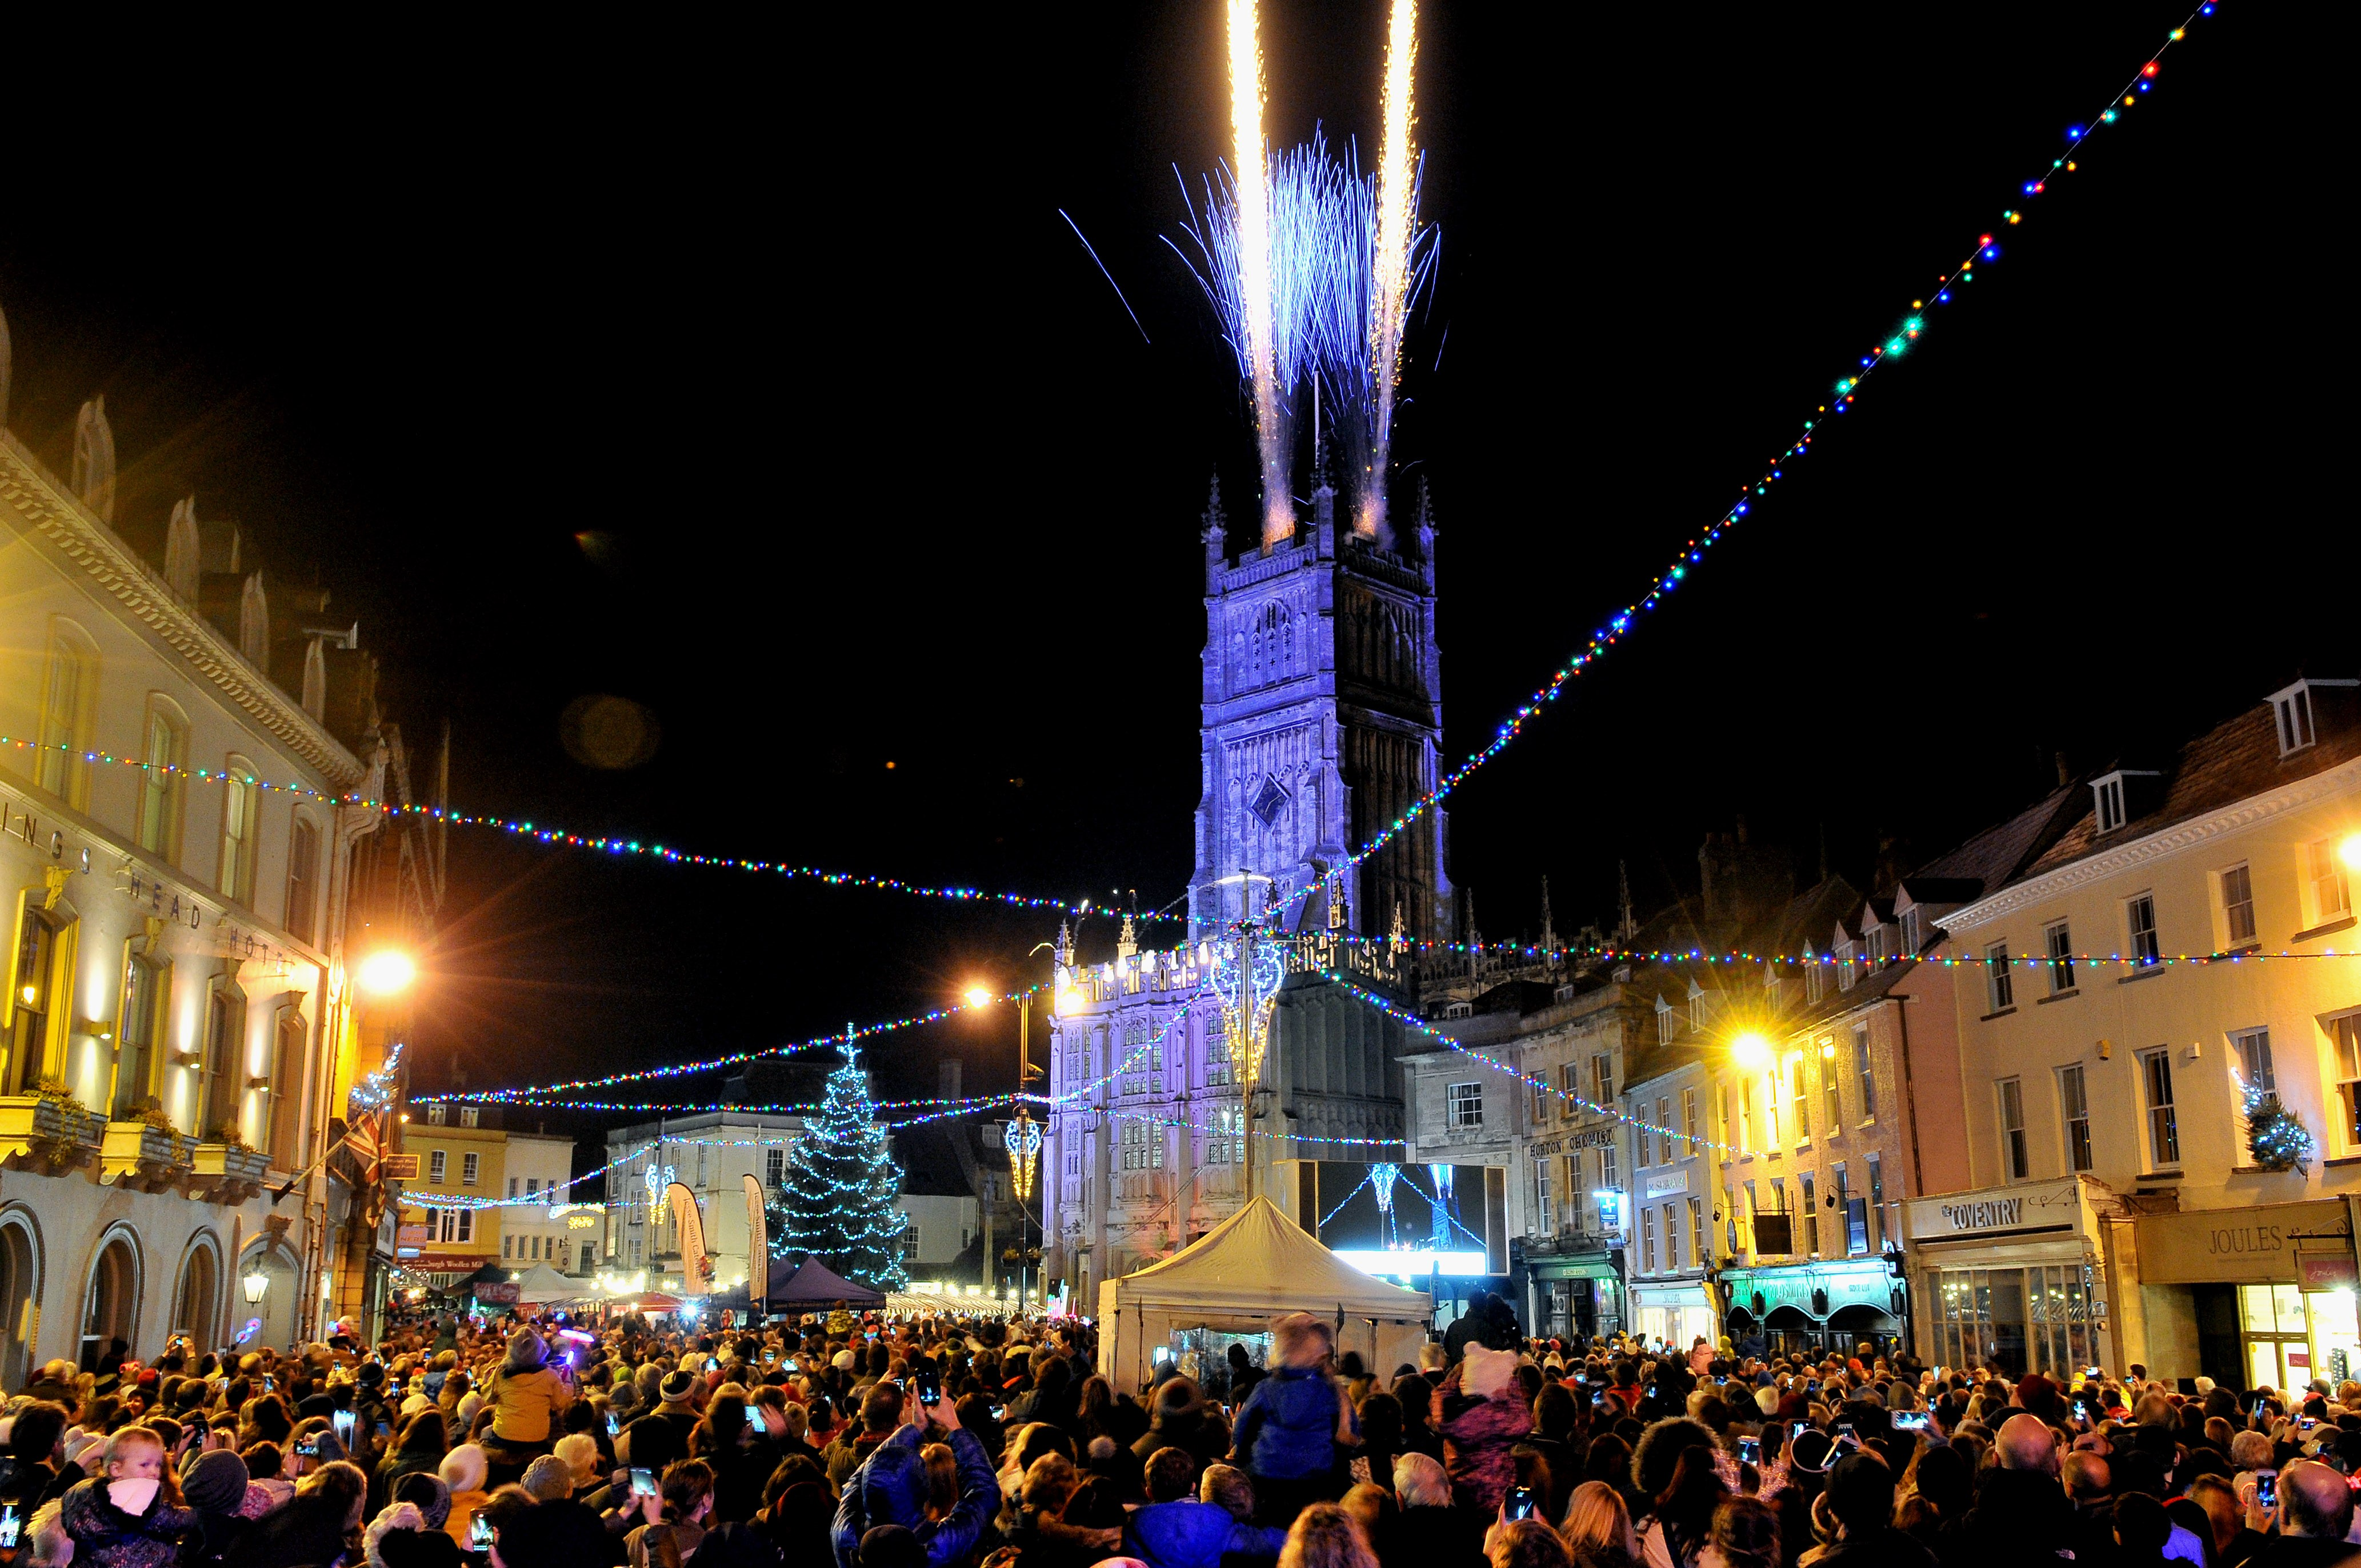 The centre of Cirencester will look something like this on Saturday, December 1!